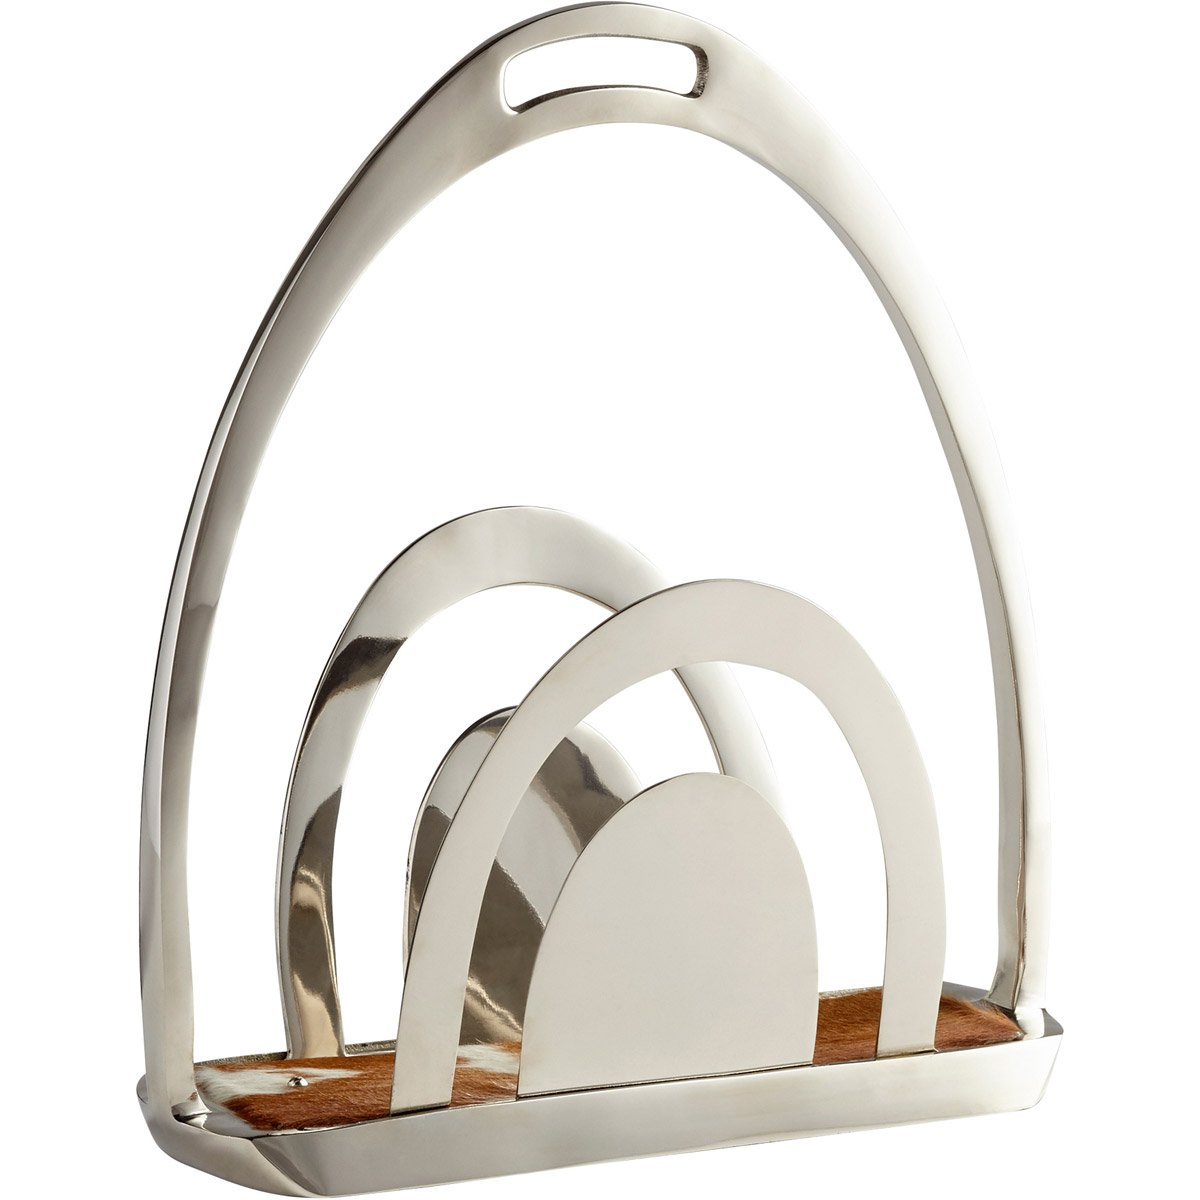 Cyan Design 08948 Placeholder Magazine Rack